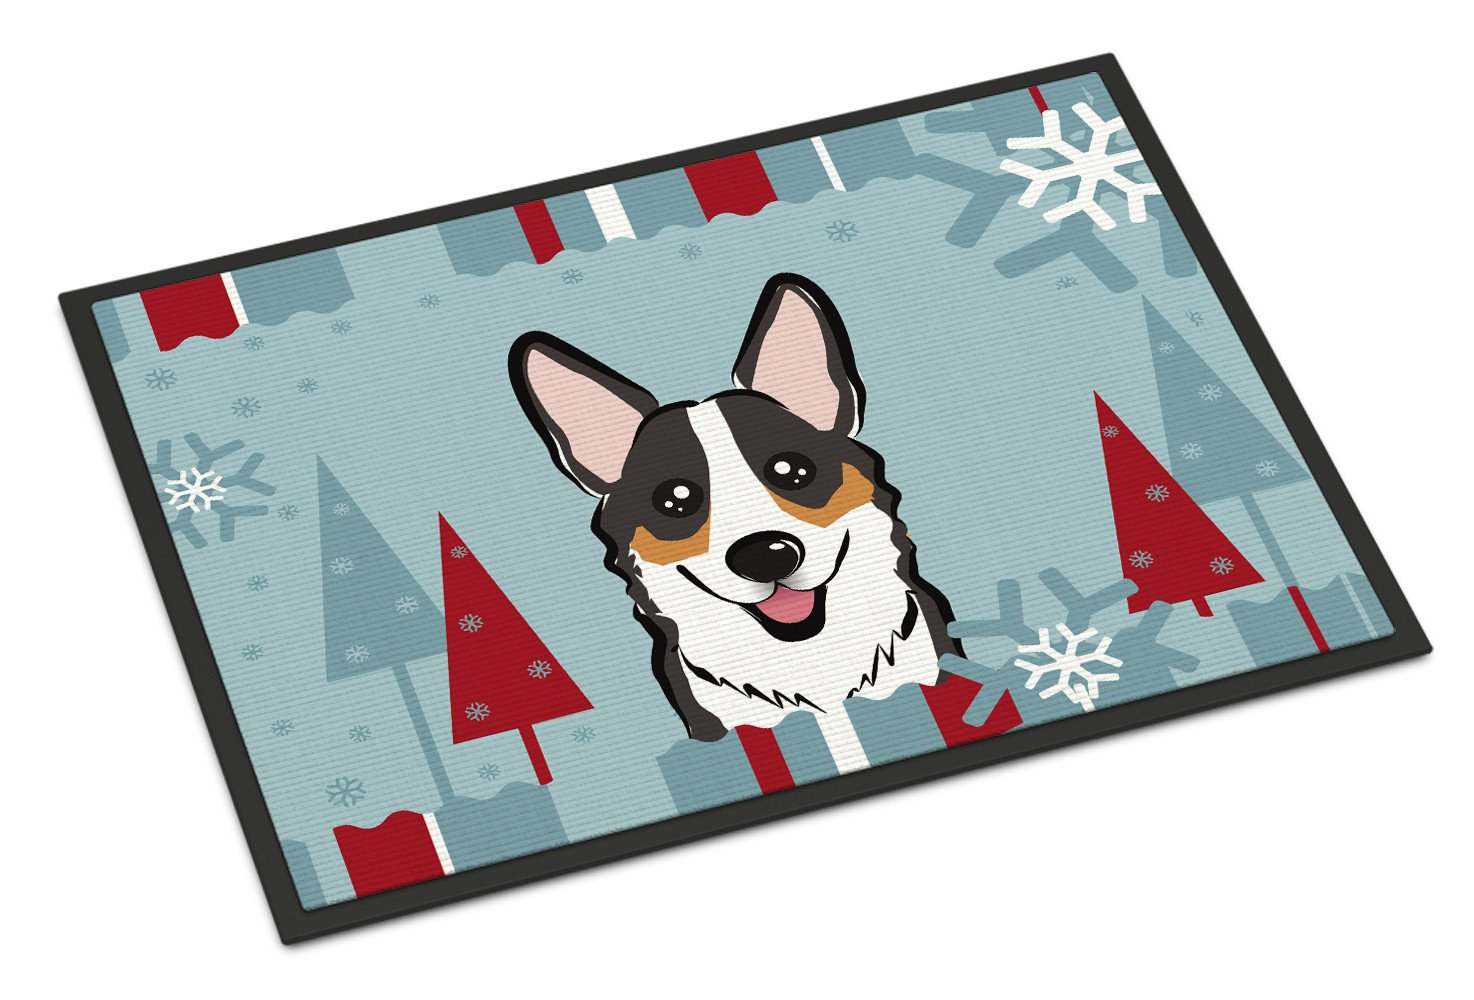 Winter Holiday Tricolor Corgi Indoor or Outdoor Mat 18x27 BB1751MAT - the-store.com